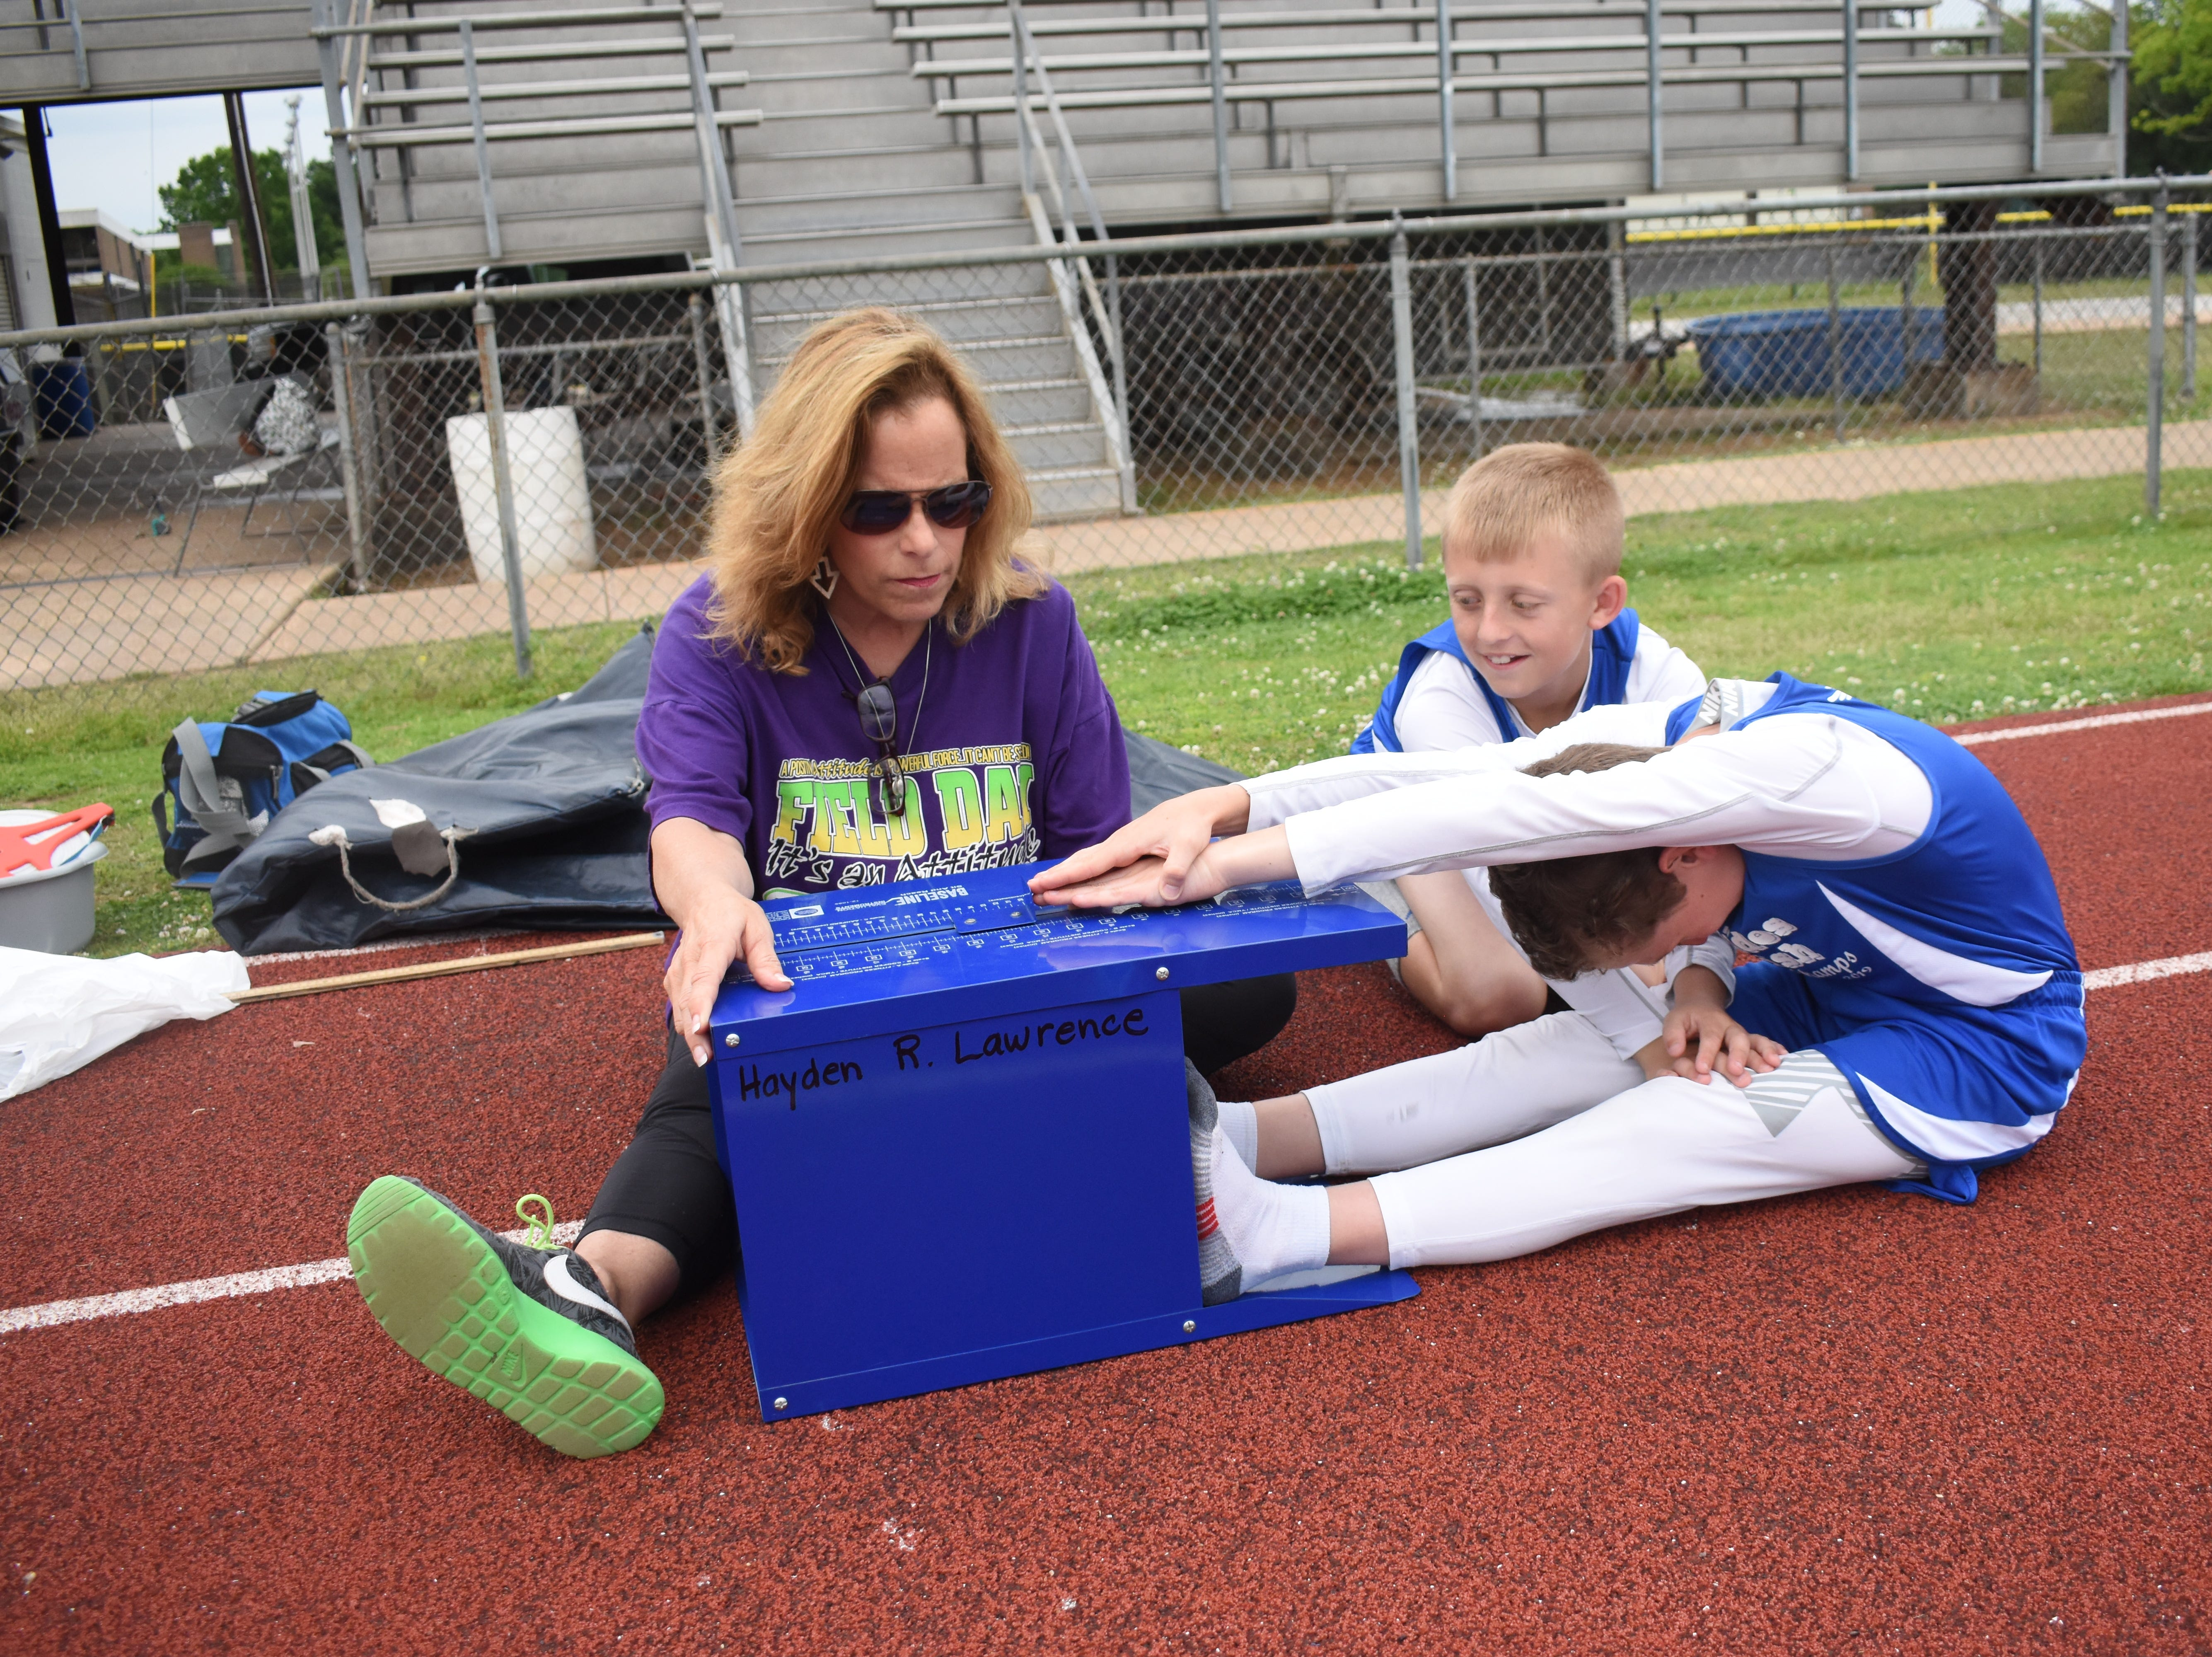 Margaret LaBorde, Rapides Parish Fitness team coach and coordinator (left) watches Jacob Dean (right) perform a sit and reach. Dean and Jaxon Ross, both of Nachman Elementary School, are part the 2019 Rapides Parish Fitness Team. They and four other Rapides Parish elementary school students will compete in the 2019 State Championship Fitness Meet to be held Saturday, April 27, 2019 at Alexandria Senior High School. The meet is part of the Governor's Council on Fitness and Sports. Students from throughout Louisiana will compete in seven events: 50-yard dash, sit and reach, pull-ups,  shuttle run, curl-ups (sit-ups), standing long jump, and the 600-yard run. For the past three years, the Rapides Parish Fitness Team has placed first at the meet. Dean was the highest scoring boy last year and won the title of 2018 Mr. Fitness for the State of Louisiana. The meet will be from 10 a.m. to 2 p.m.